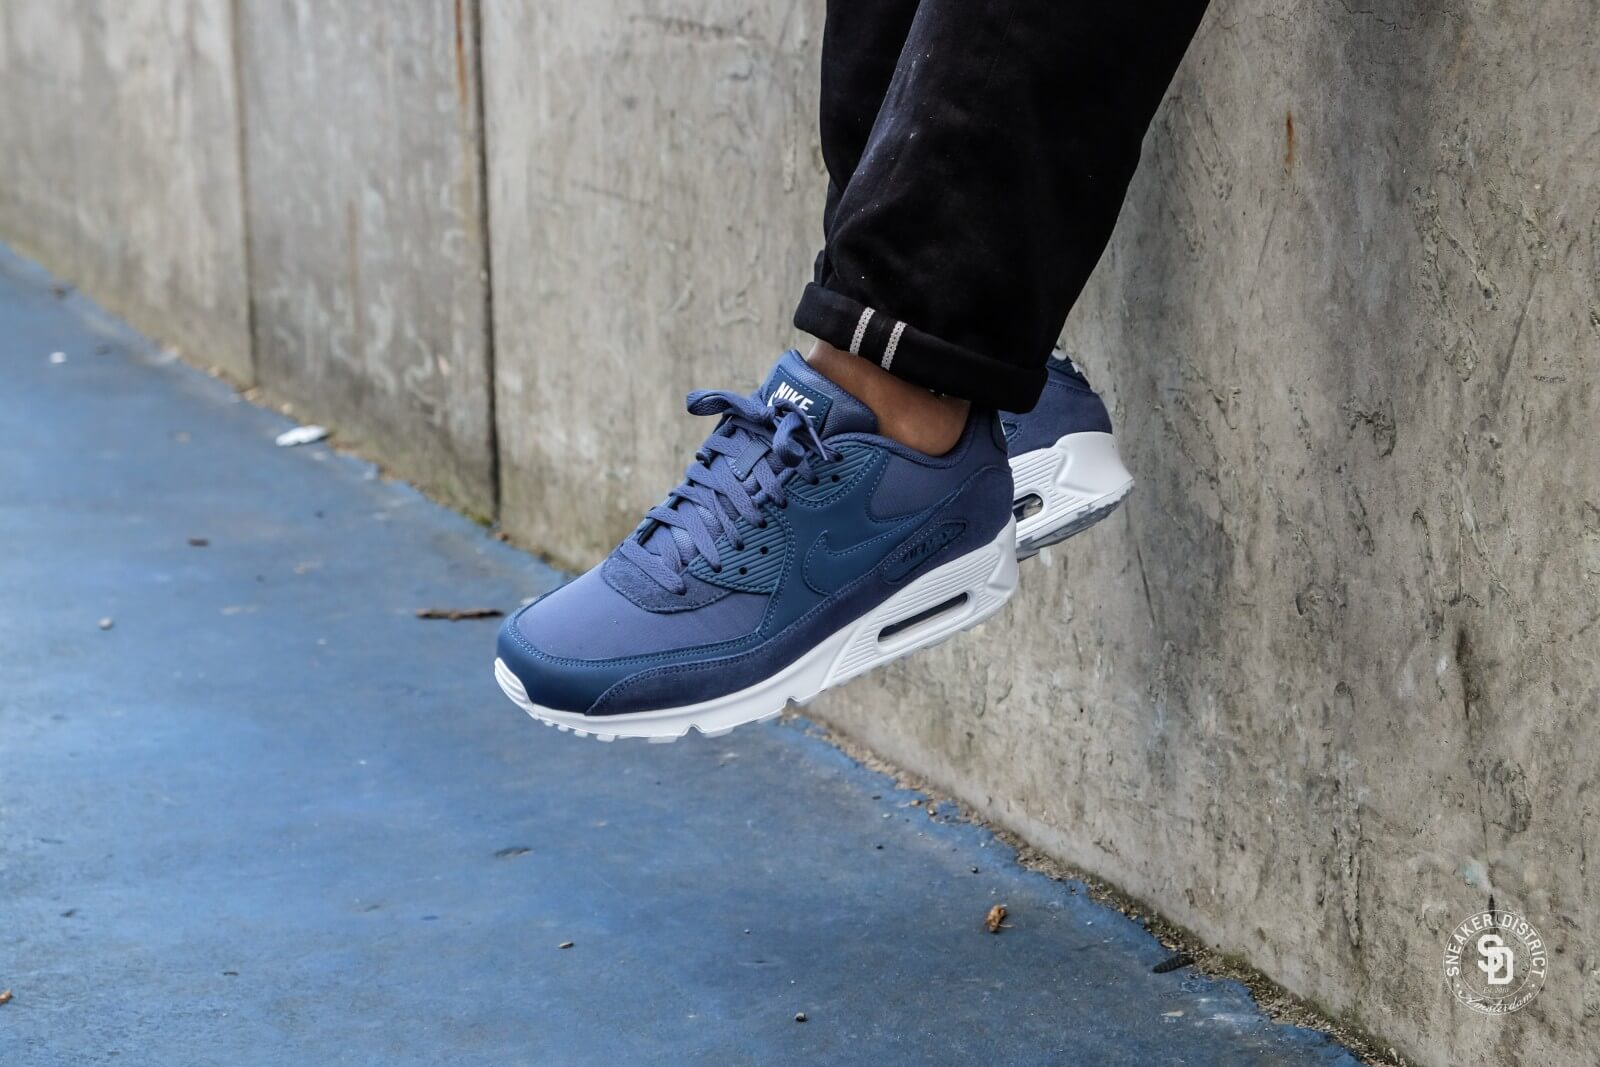 factory authentic 94dcf 45a01 Nike Air Max 90 Essential Diffused BlueWhite AJ1285 400